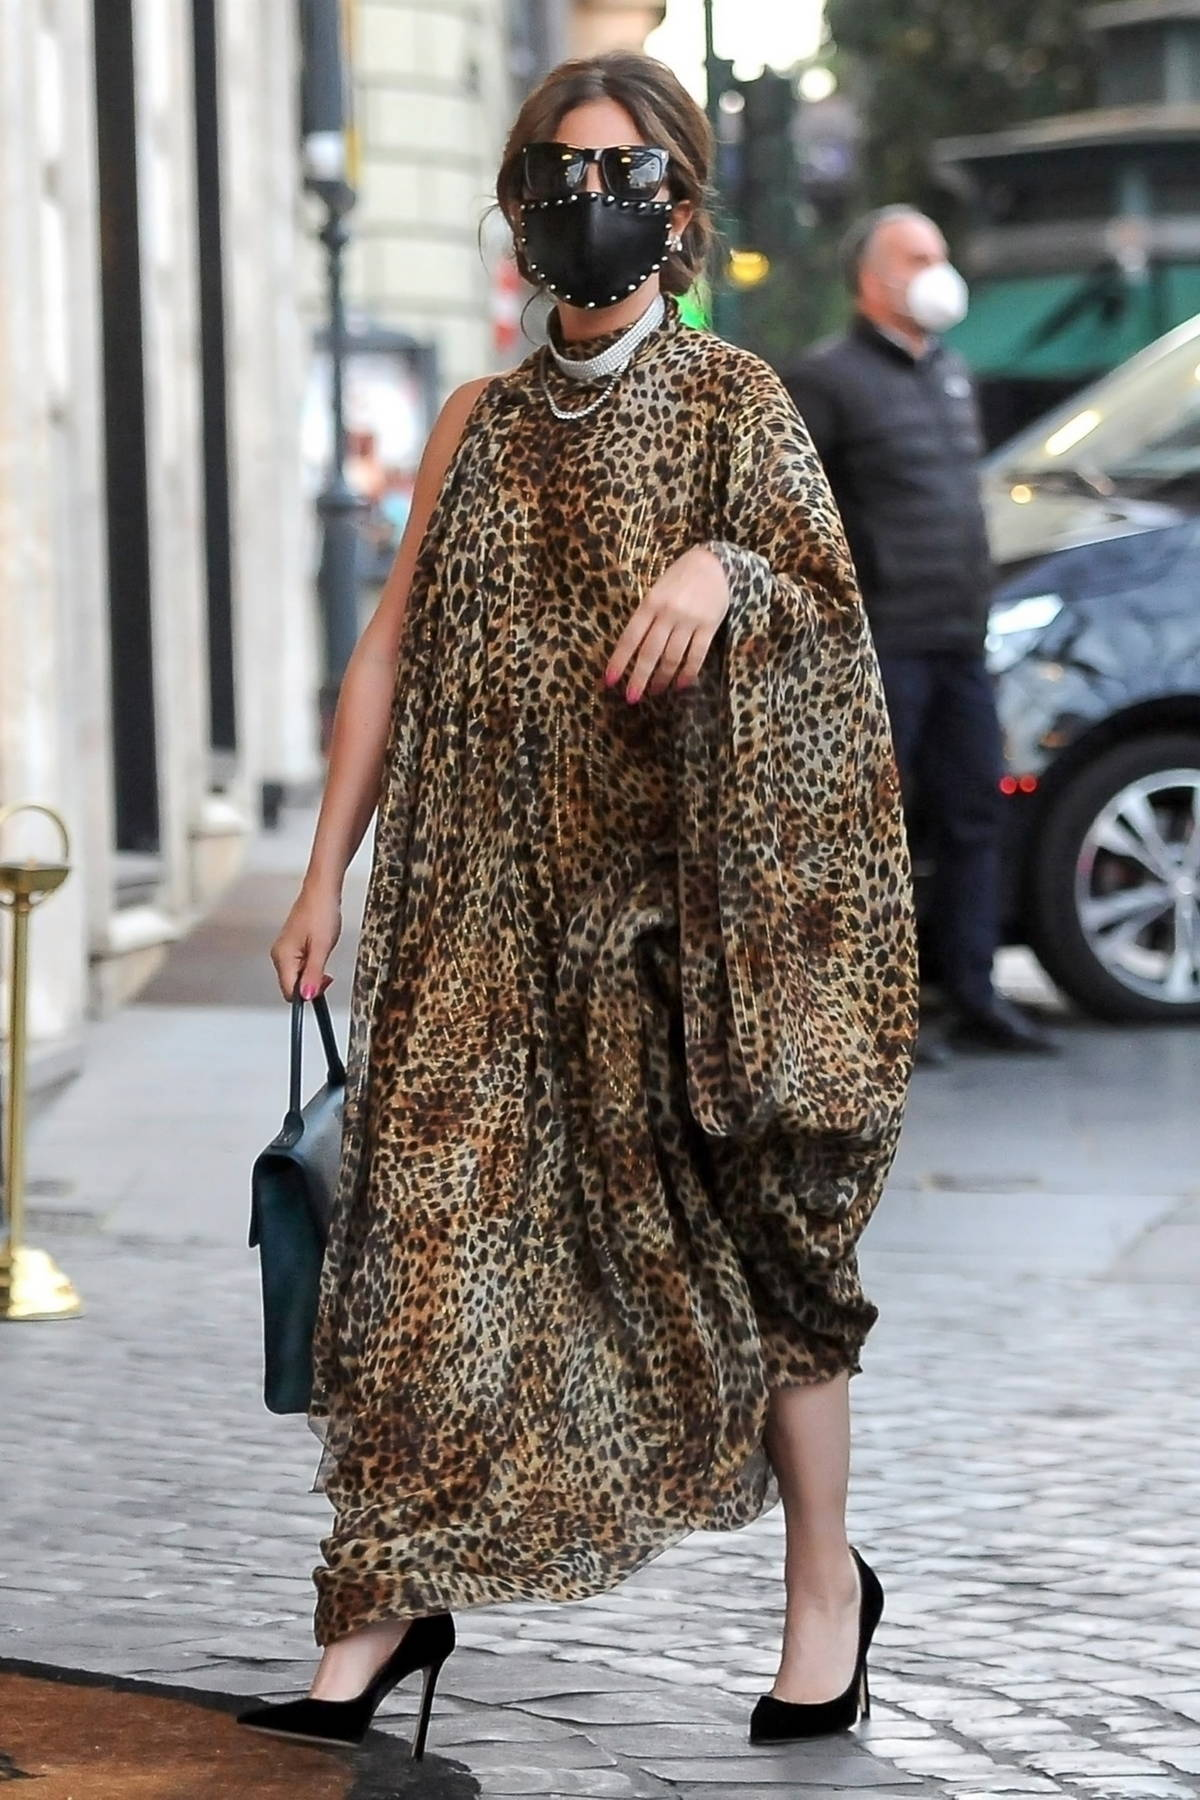 Lady Gaga looks fashionable in a leopard print dress as she arrives back to her hotel in Rome, Italy